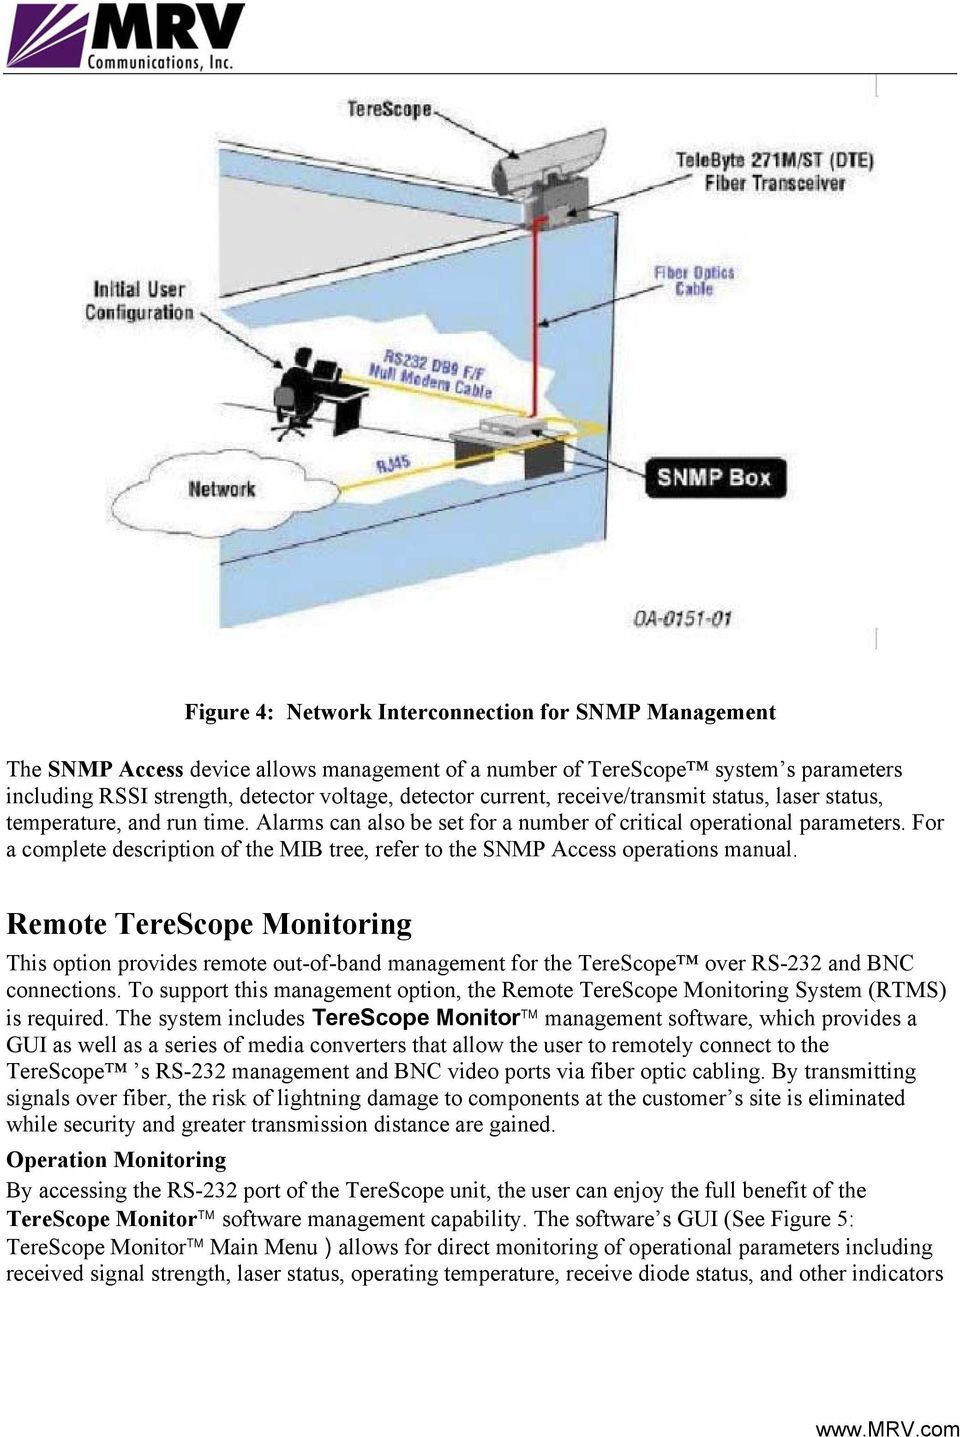 For a complete description of the MIB tree, refer to the SNMP Access operations manual.